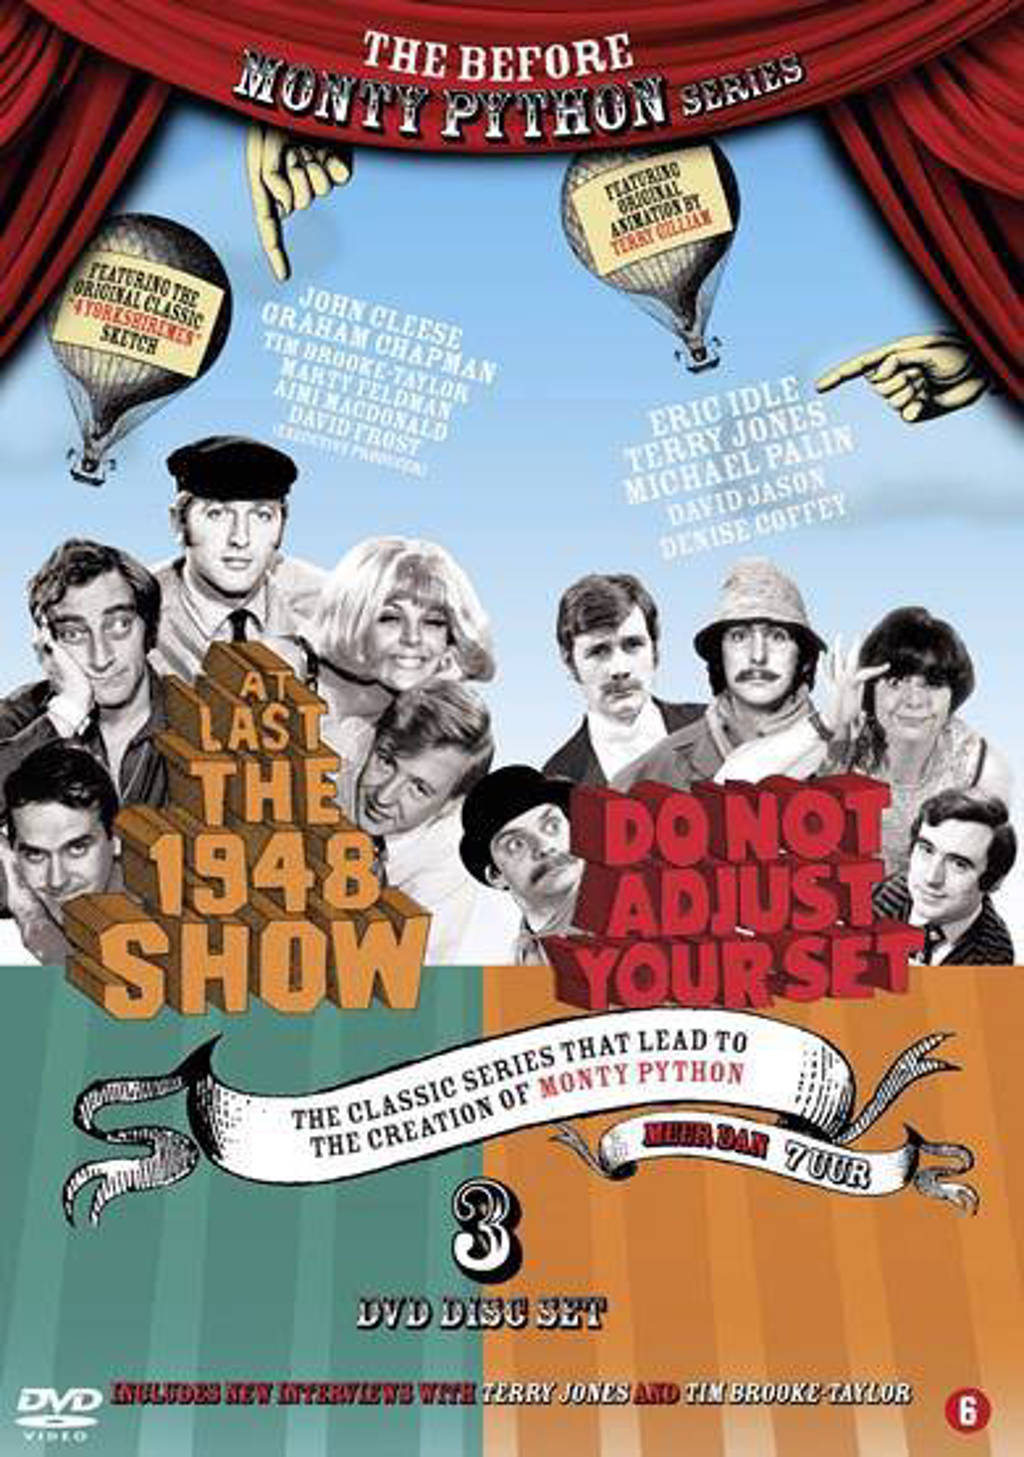 Before Monty Python - The TV Shows (DVD)